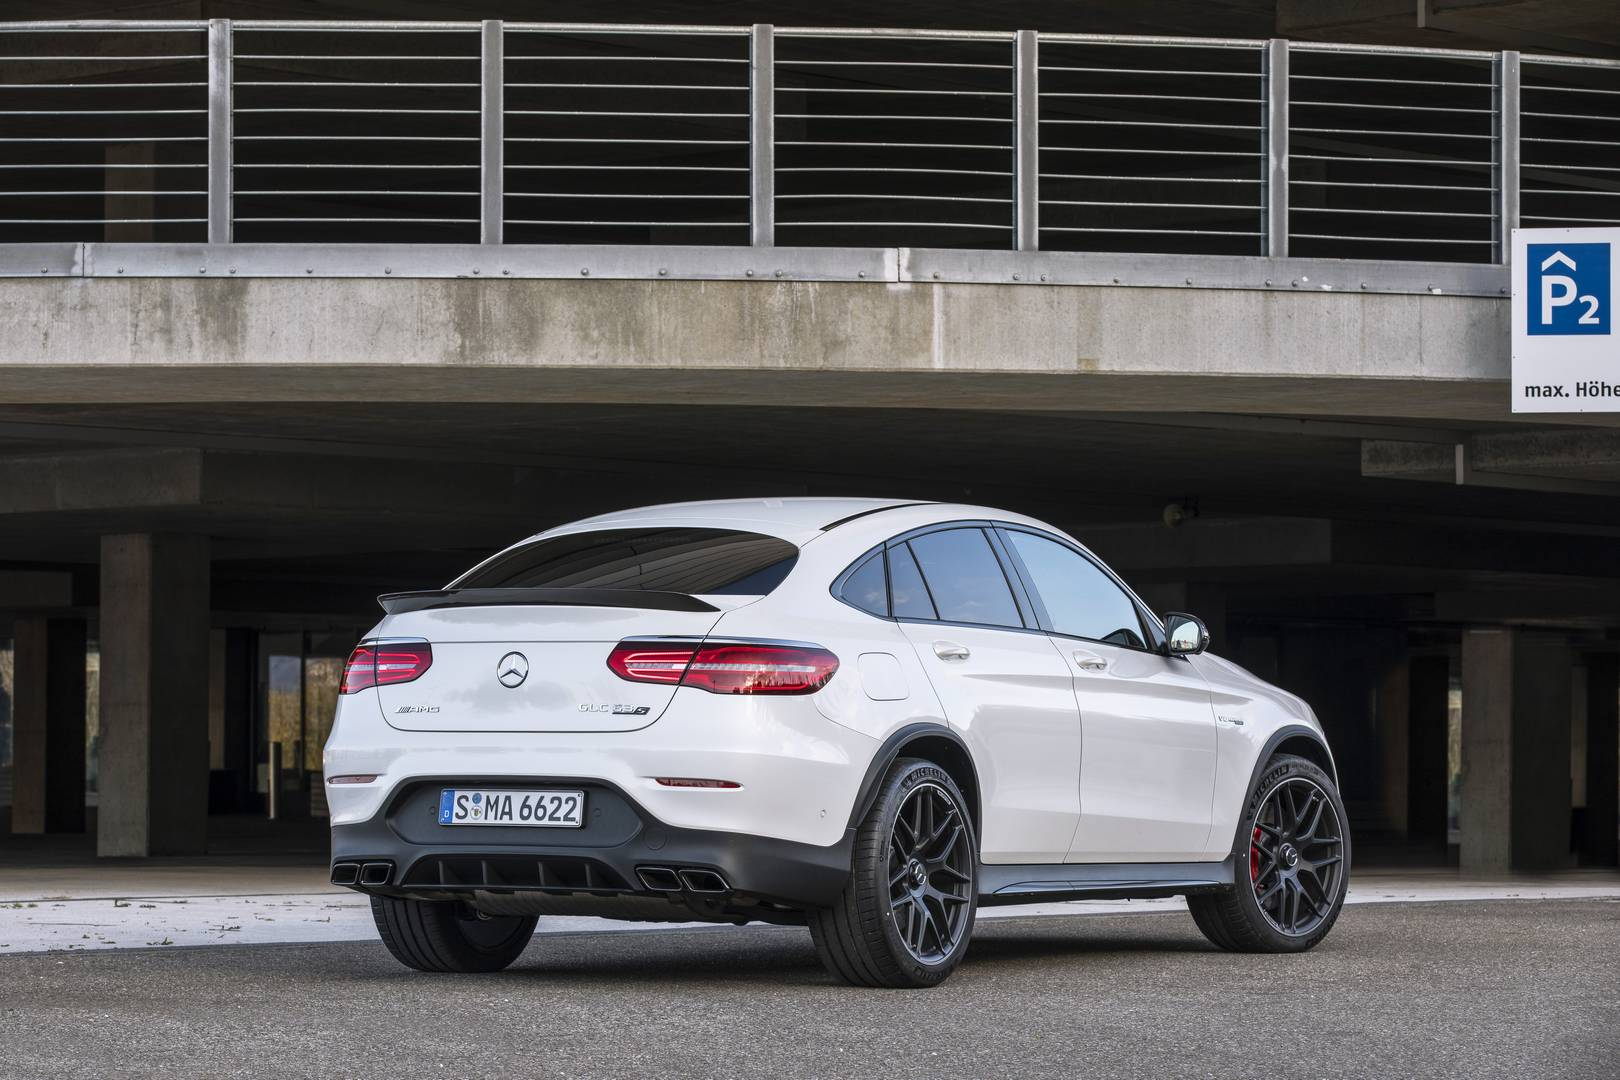 v8 supercars for 2018 with 2018 Mercedes Amg Glc 63 S Coupe Review on Mercedes Amg F1 Logo 12 in addition 2018 Mercedes Amg Glc 63 S Coupe Review likewise Ferrari 488 Pista in addition 1091231 2015 Porsche 918 Spyder First Drive together with Hamilton.